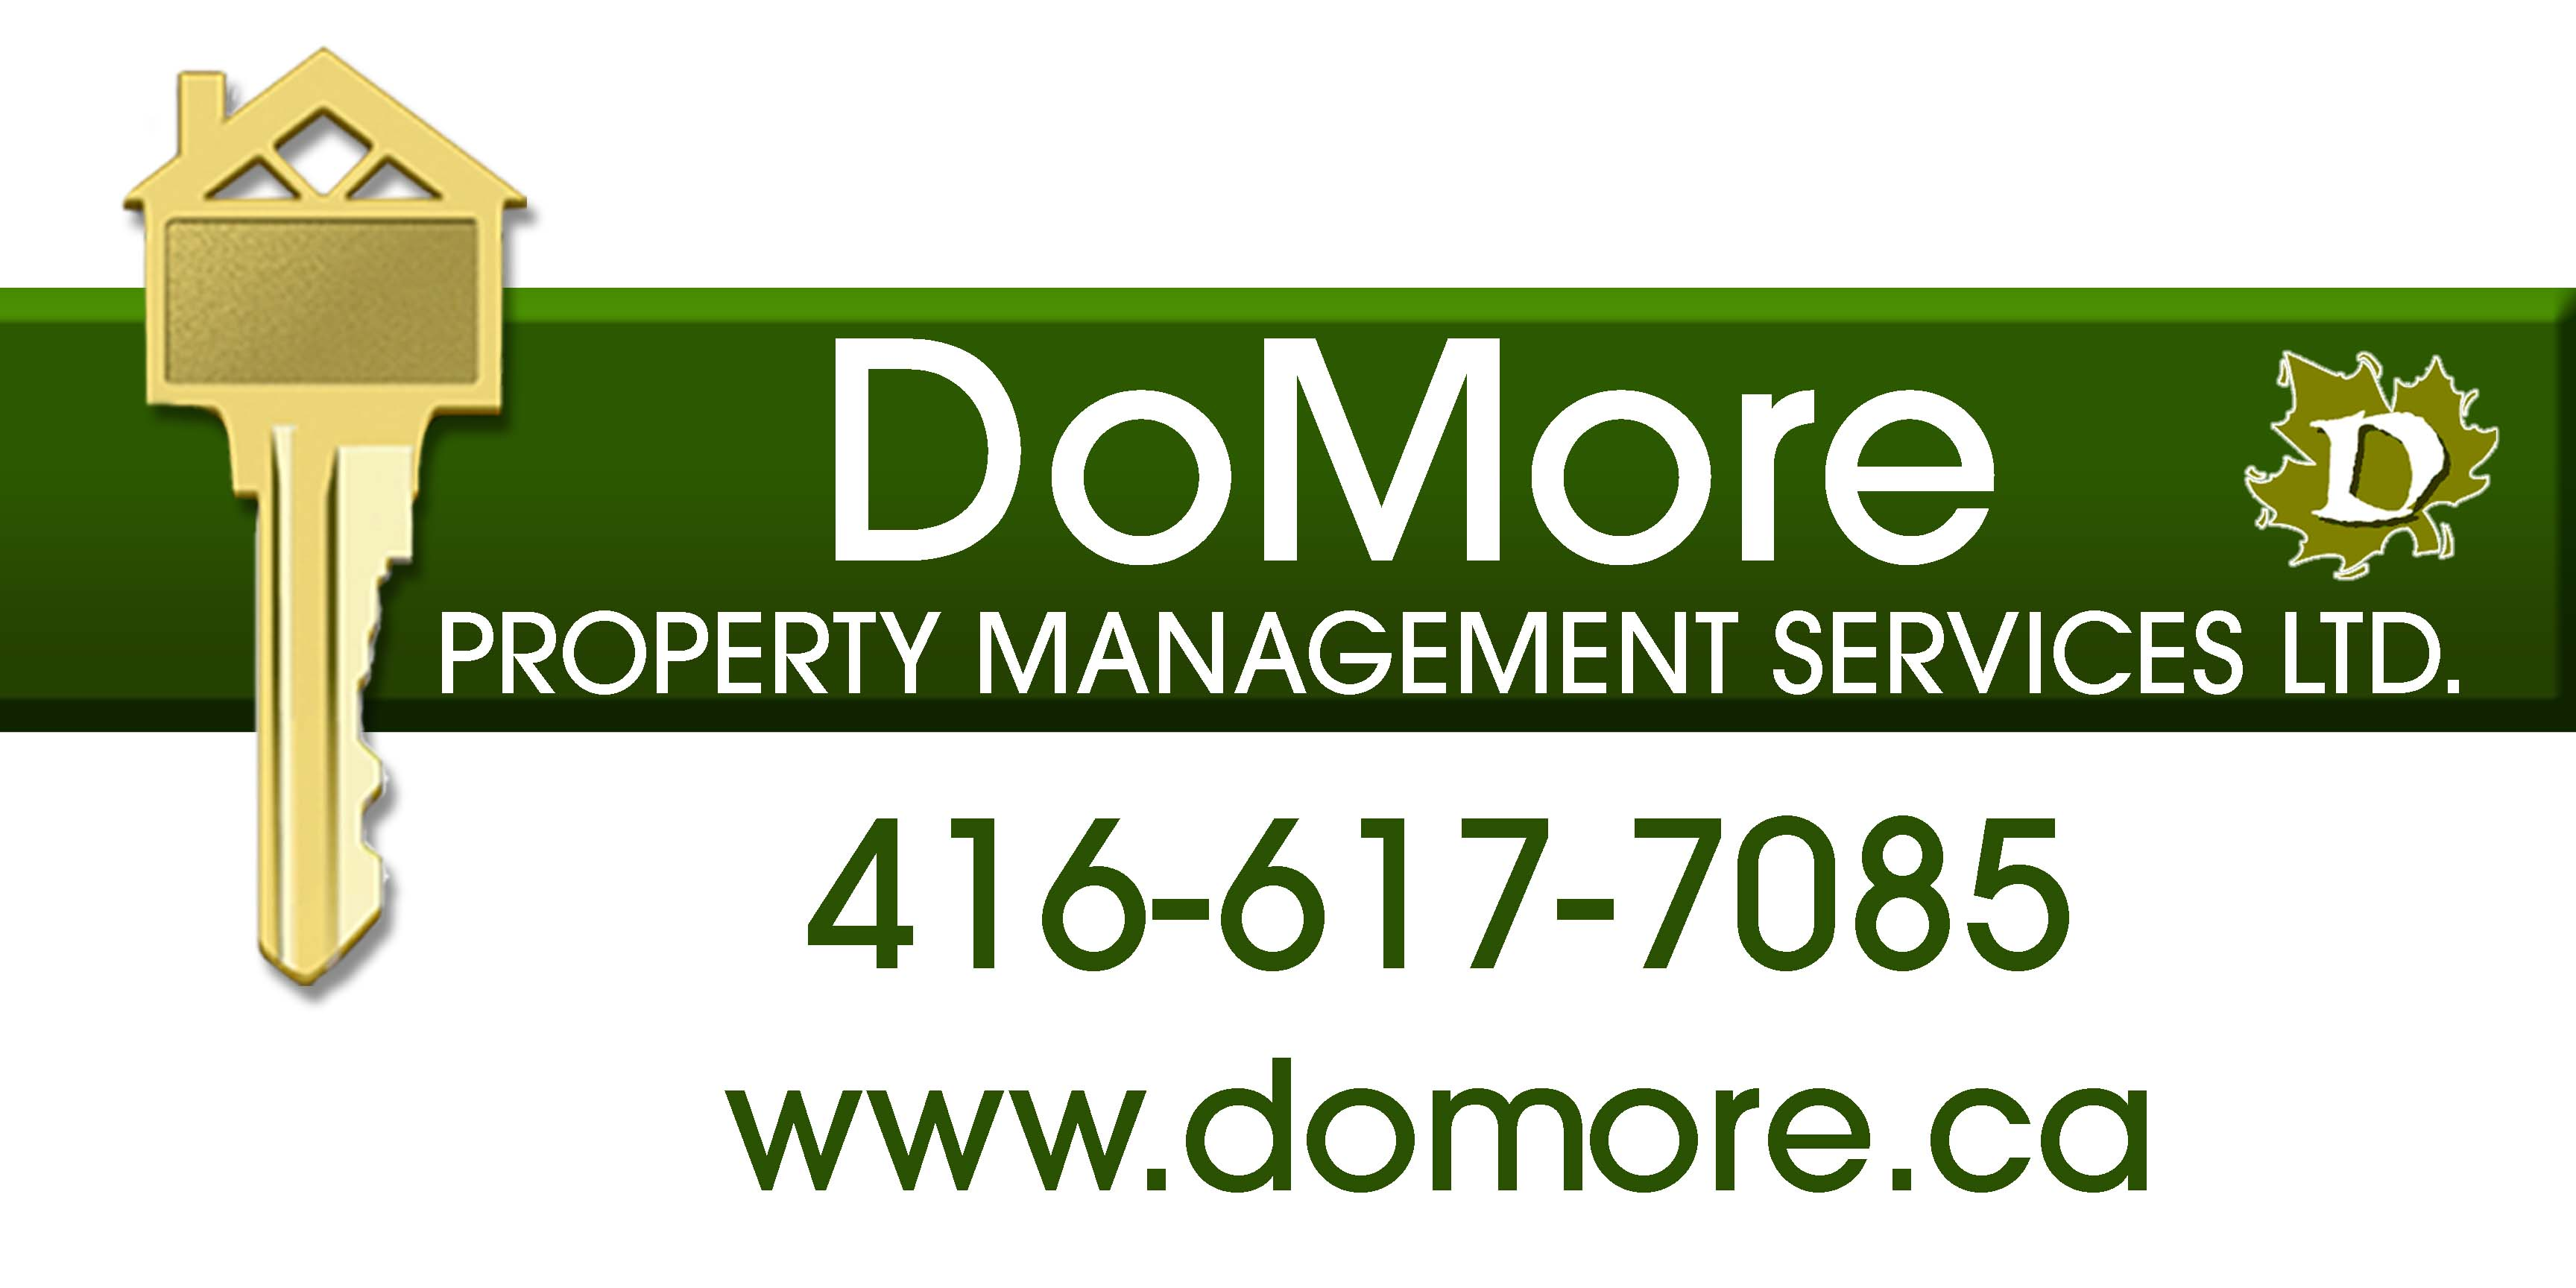 DoMore Property Management Services Ltd.